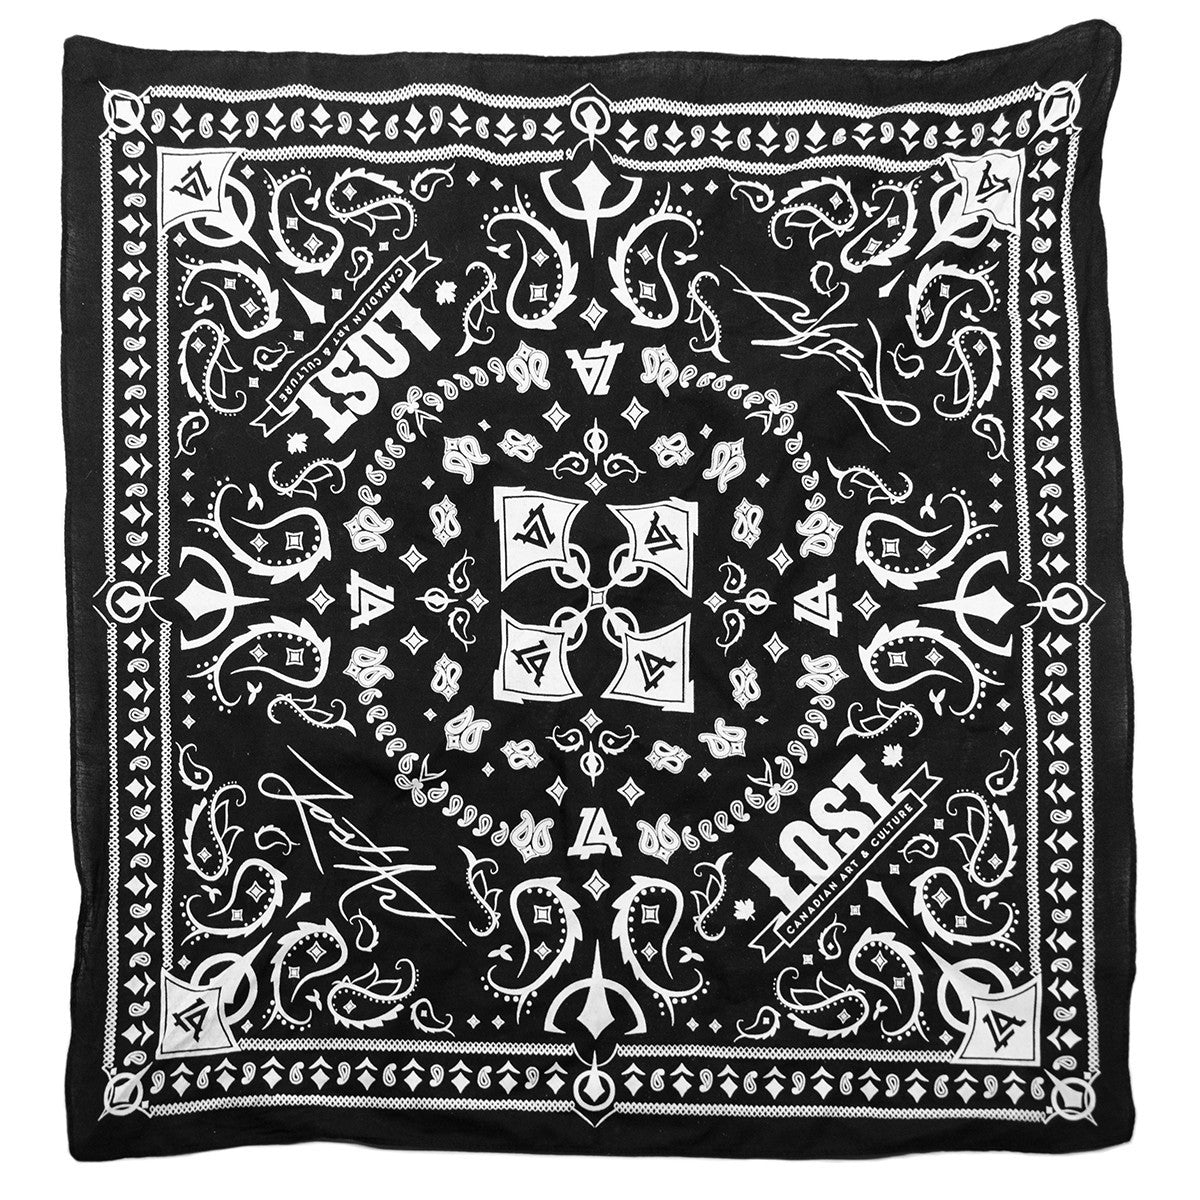 Lost Art Canada - custom black bandana front view